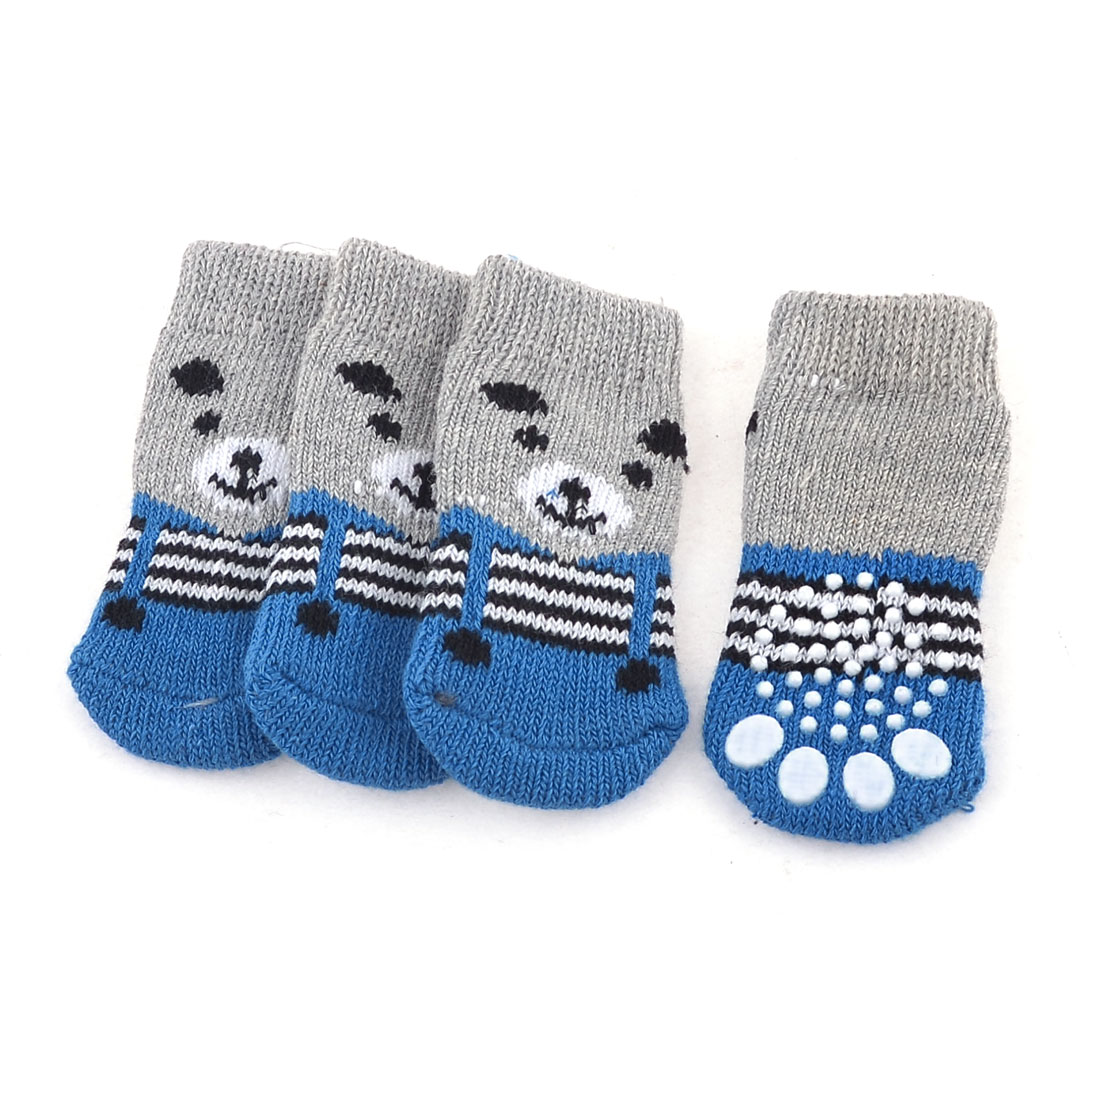 2 Pairs Blue Gray Bear Head Printed Knitted Stretchy Pet Dog Puppy Cat Socks